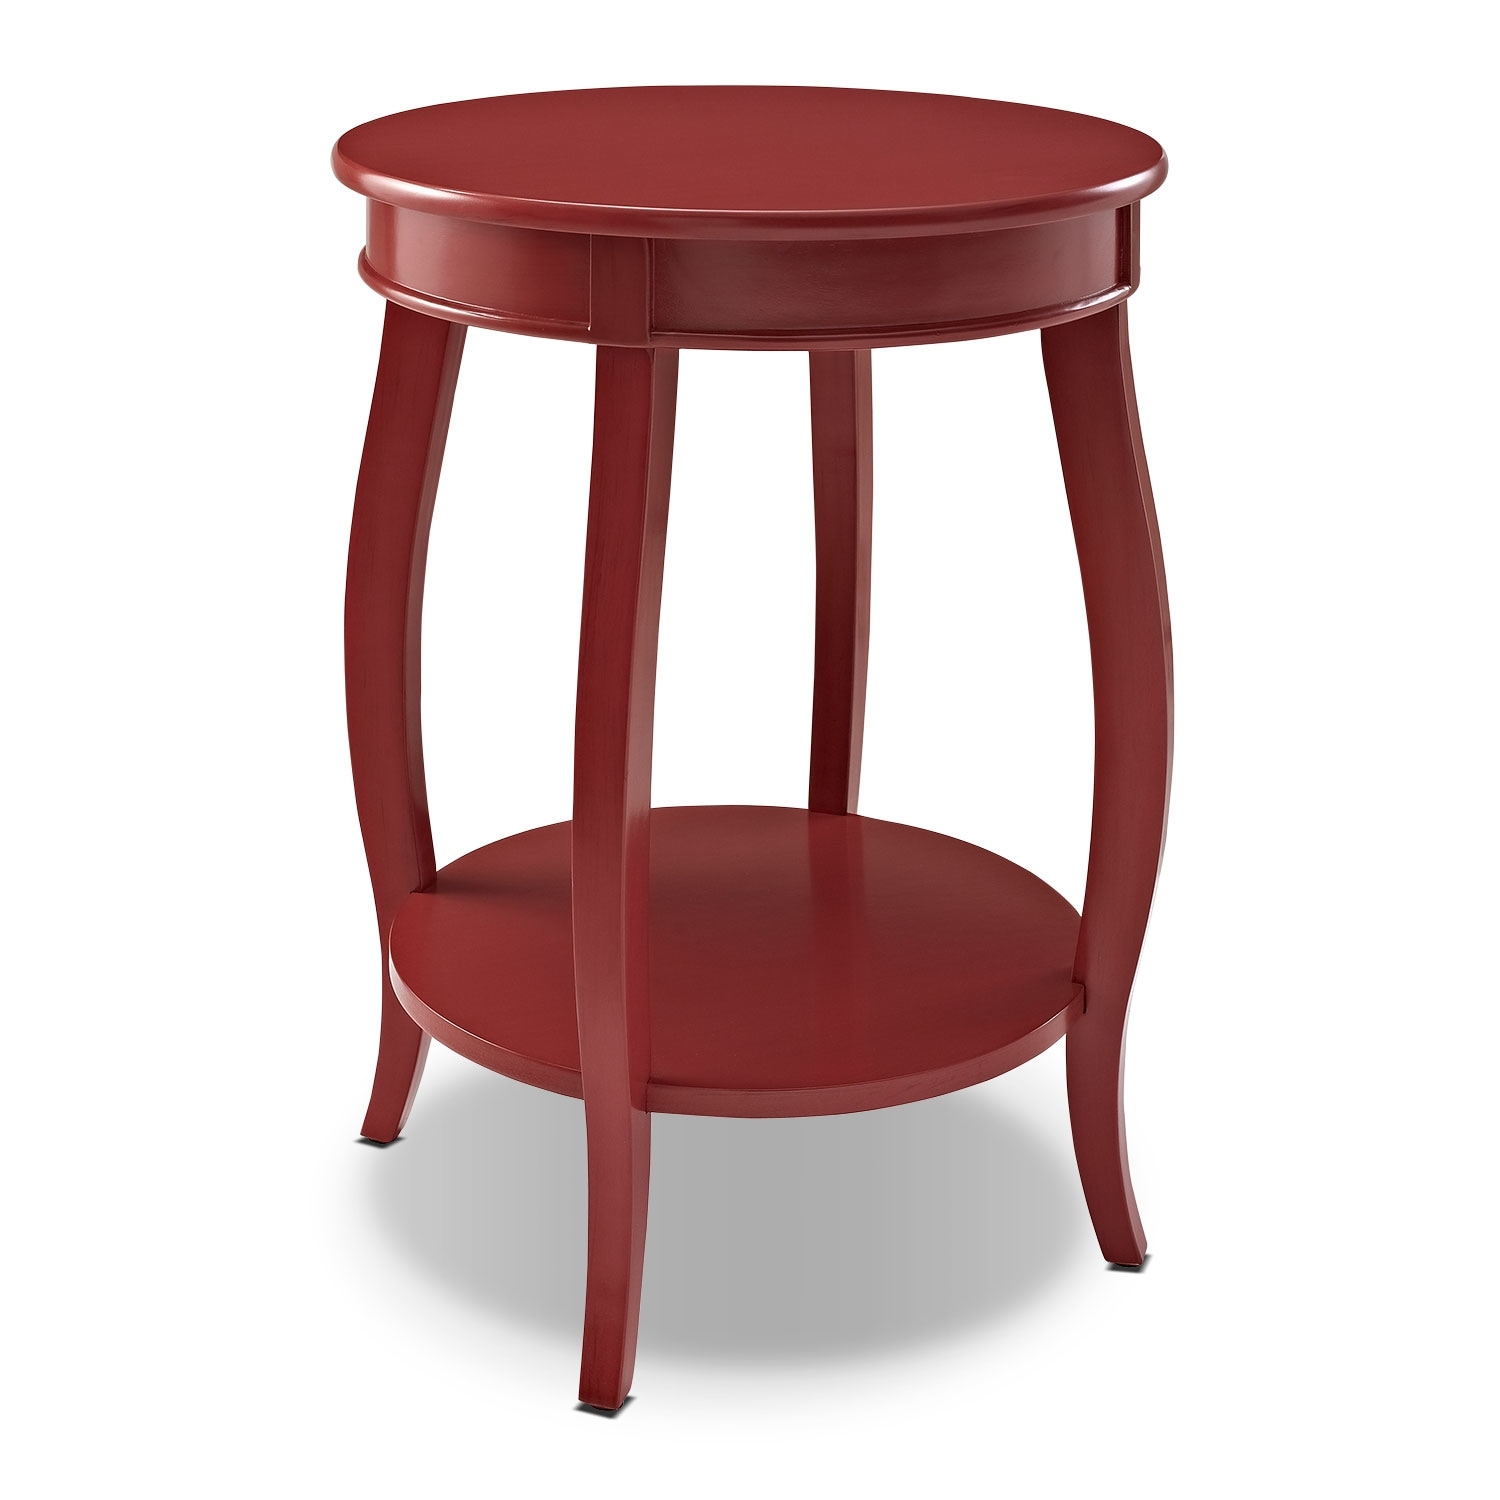 Accent and Occasional Furniture - Sydney Accent Table - Red